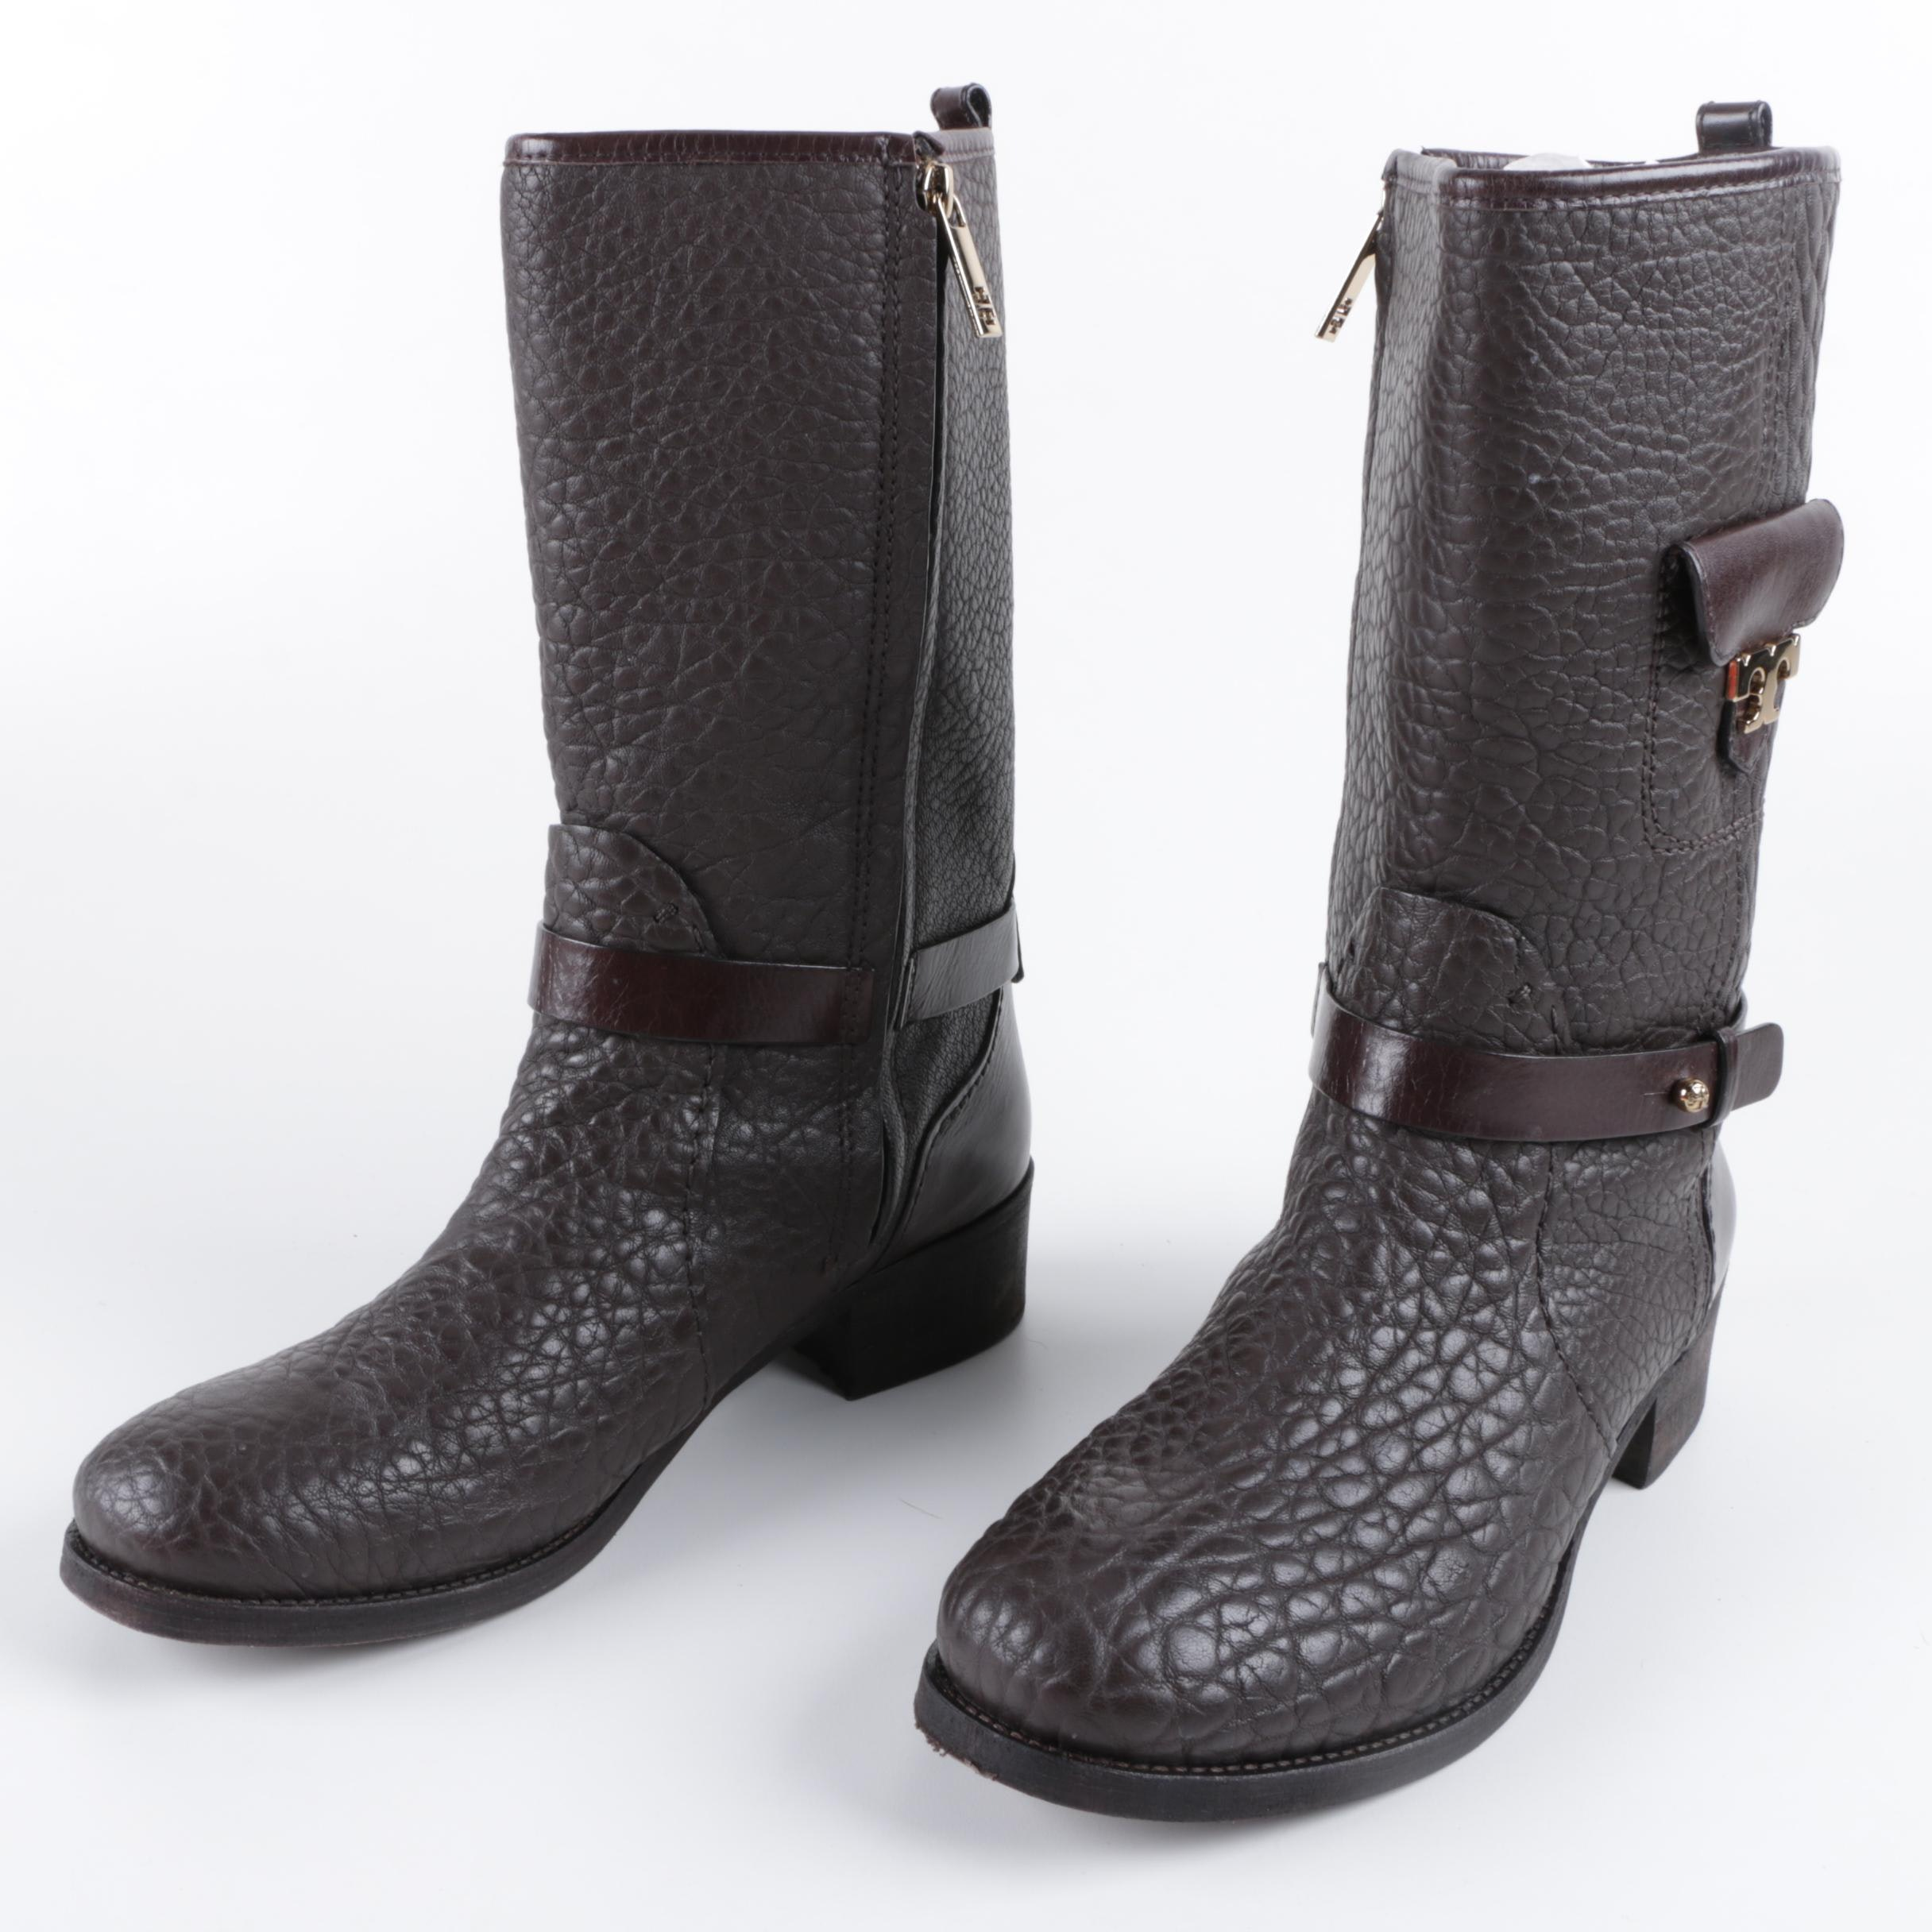 Tory Burch Leona Brown Leather Boots with Side Pocket